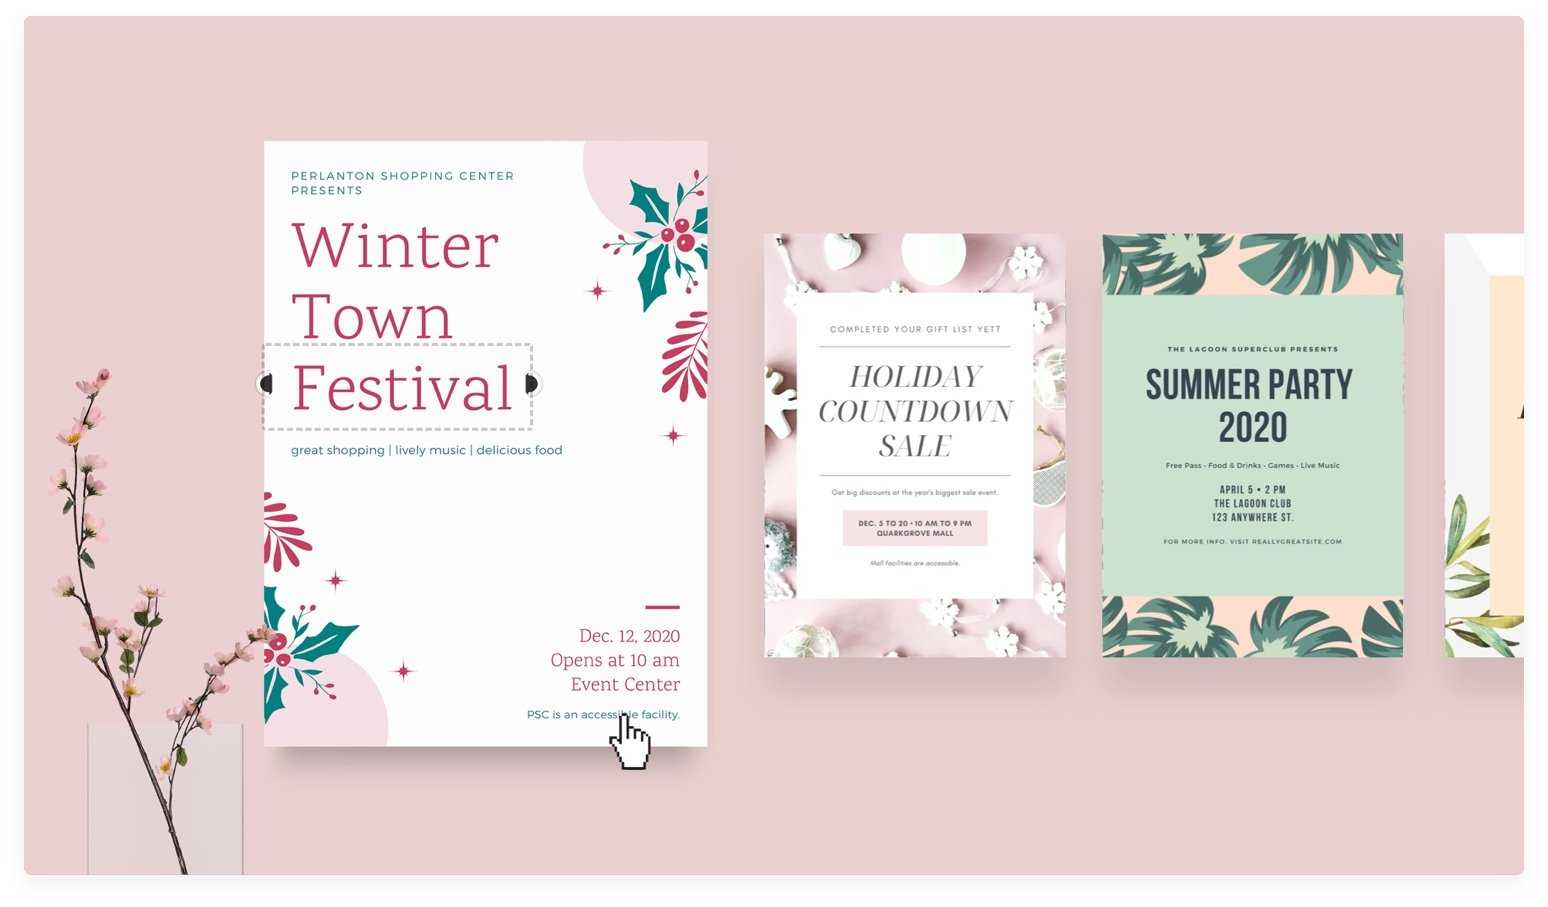 Free Online Flyer Maker: Design Custom Flyers With Canva Throughout Design Flyers Templates Online Free